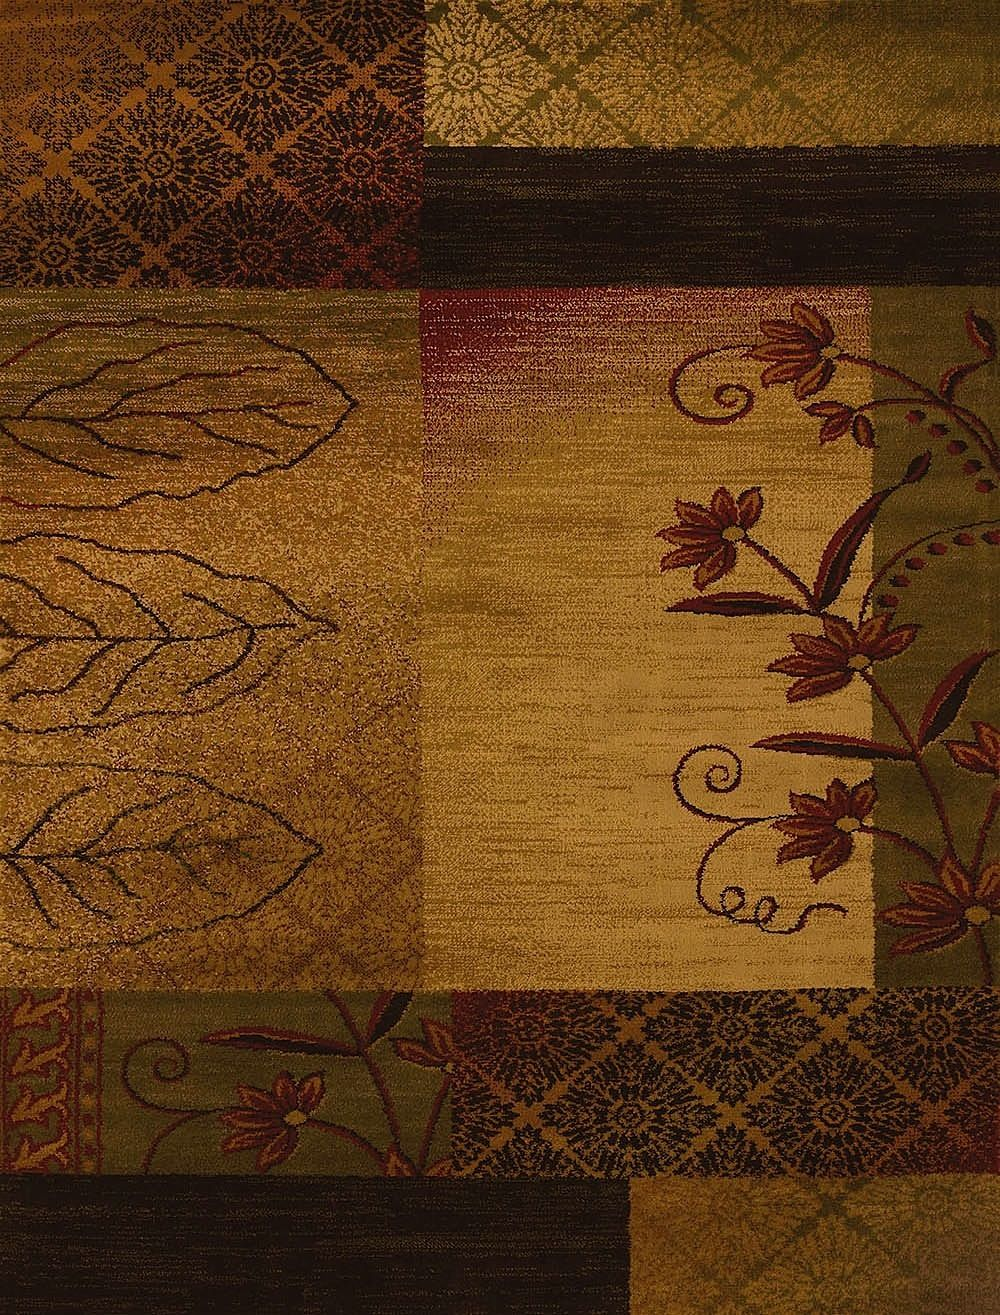 united weavers affinity country & floral area rug collection